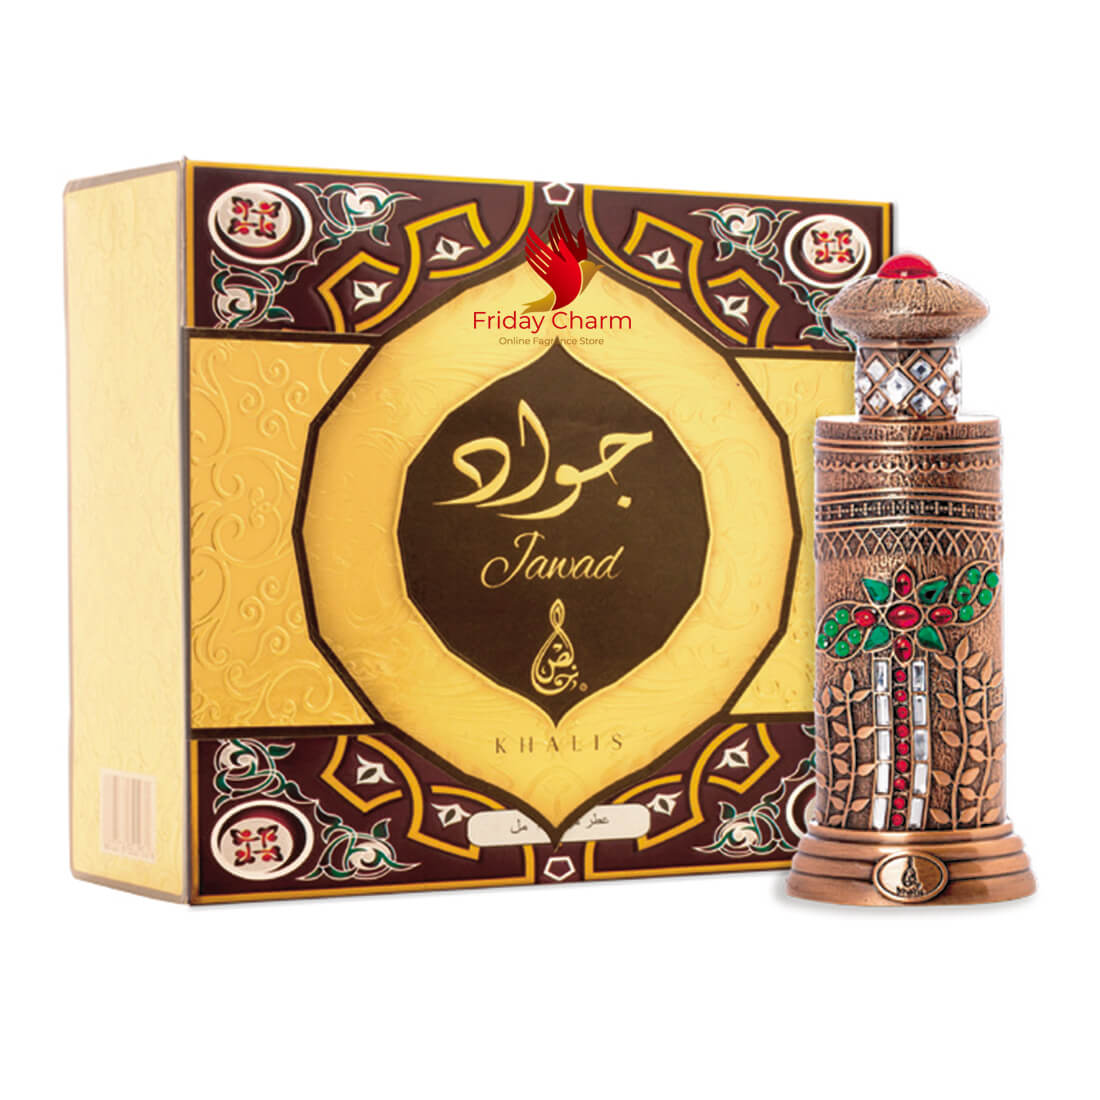 Khalis Jawad Attar - 18ml